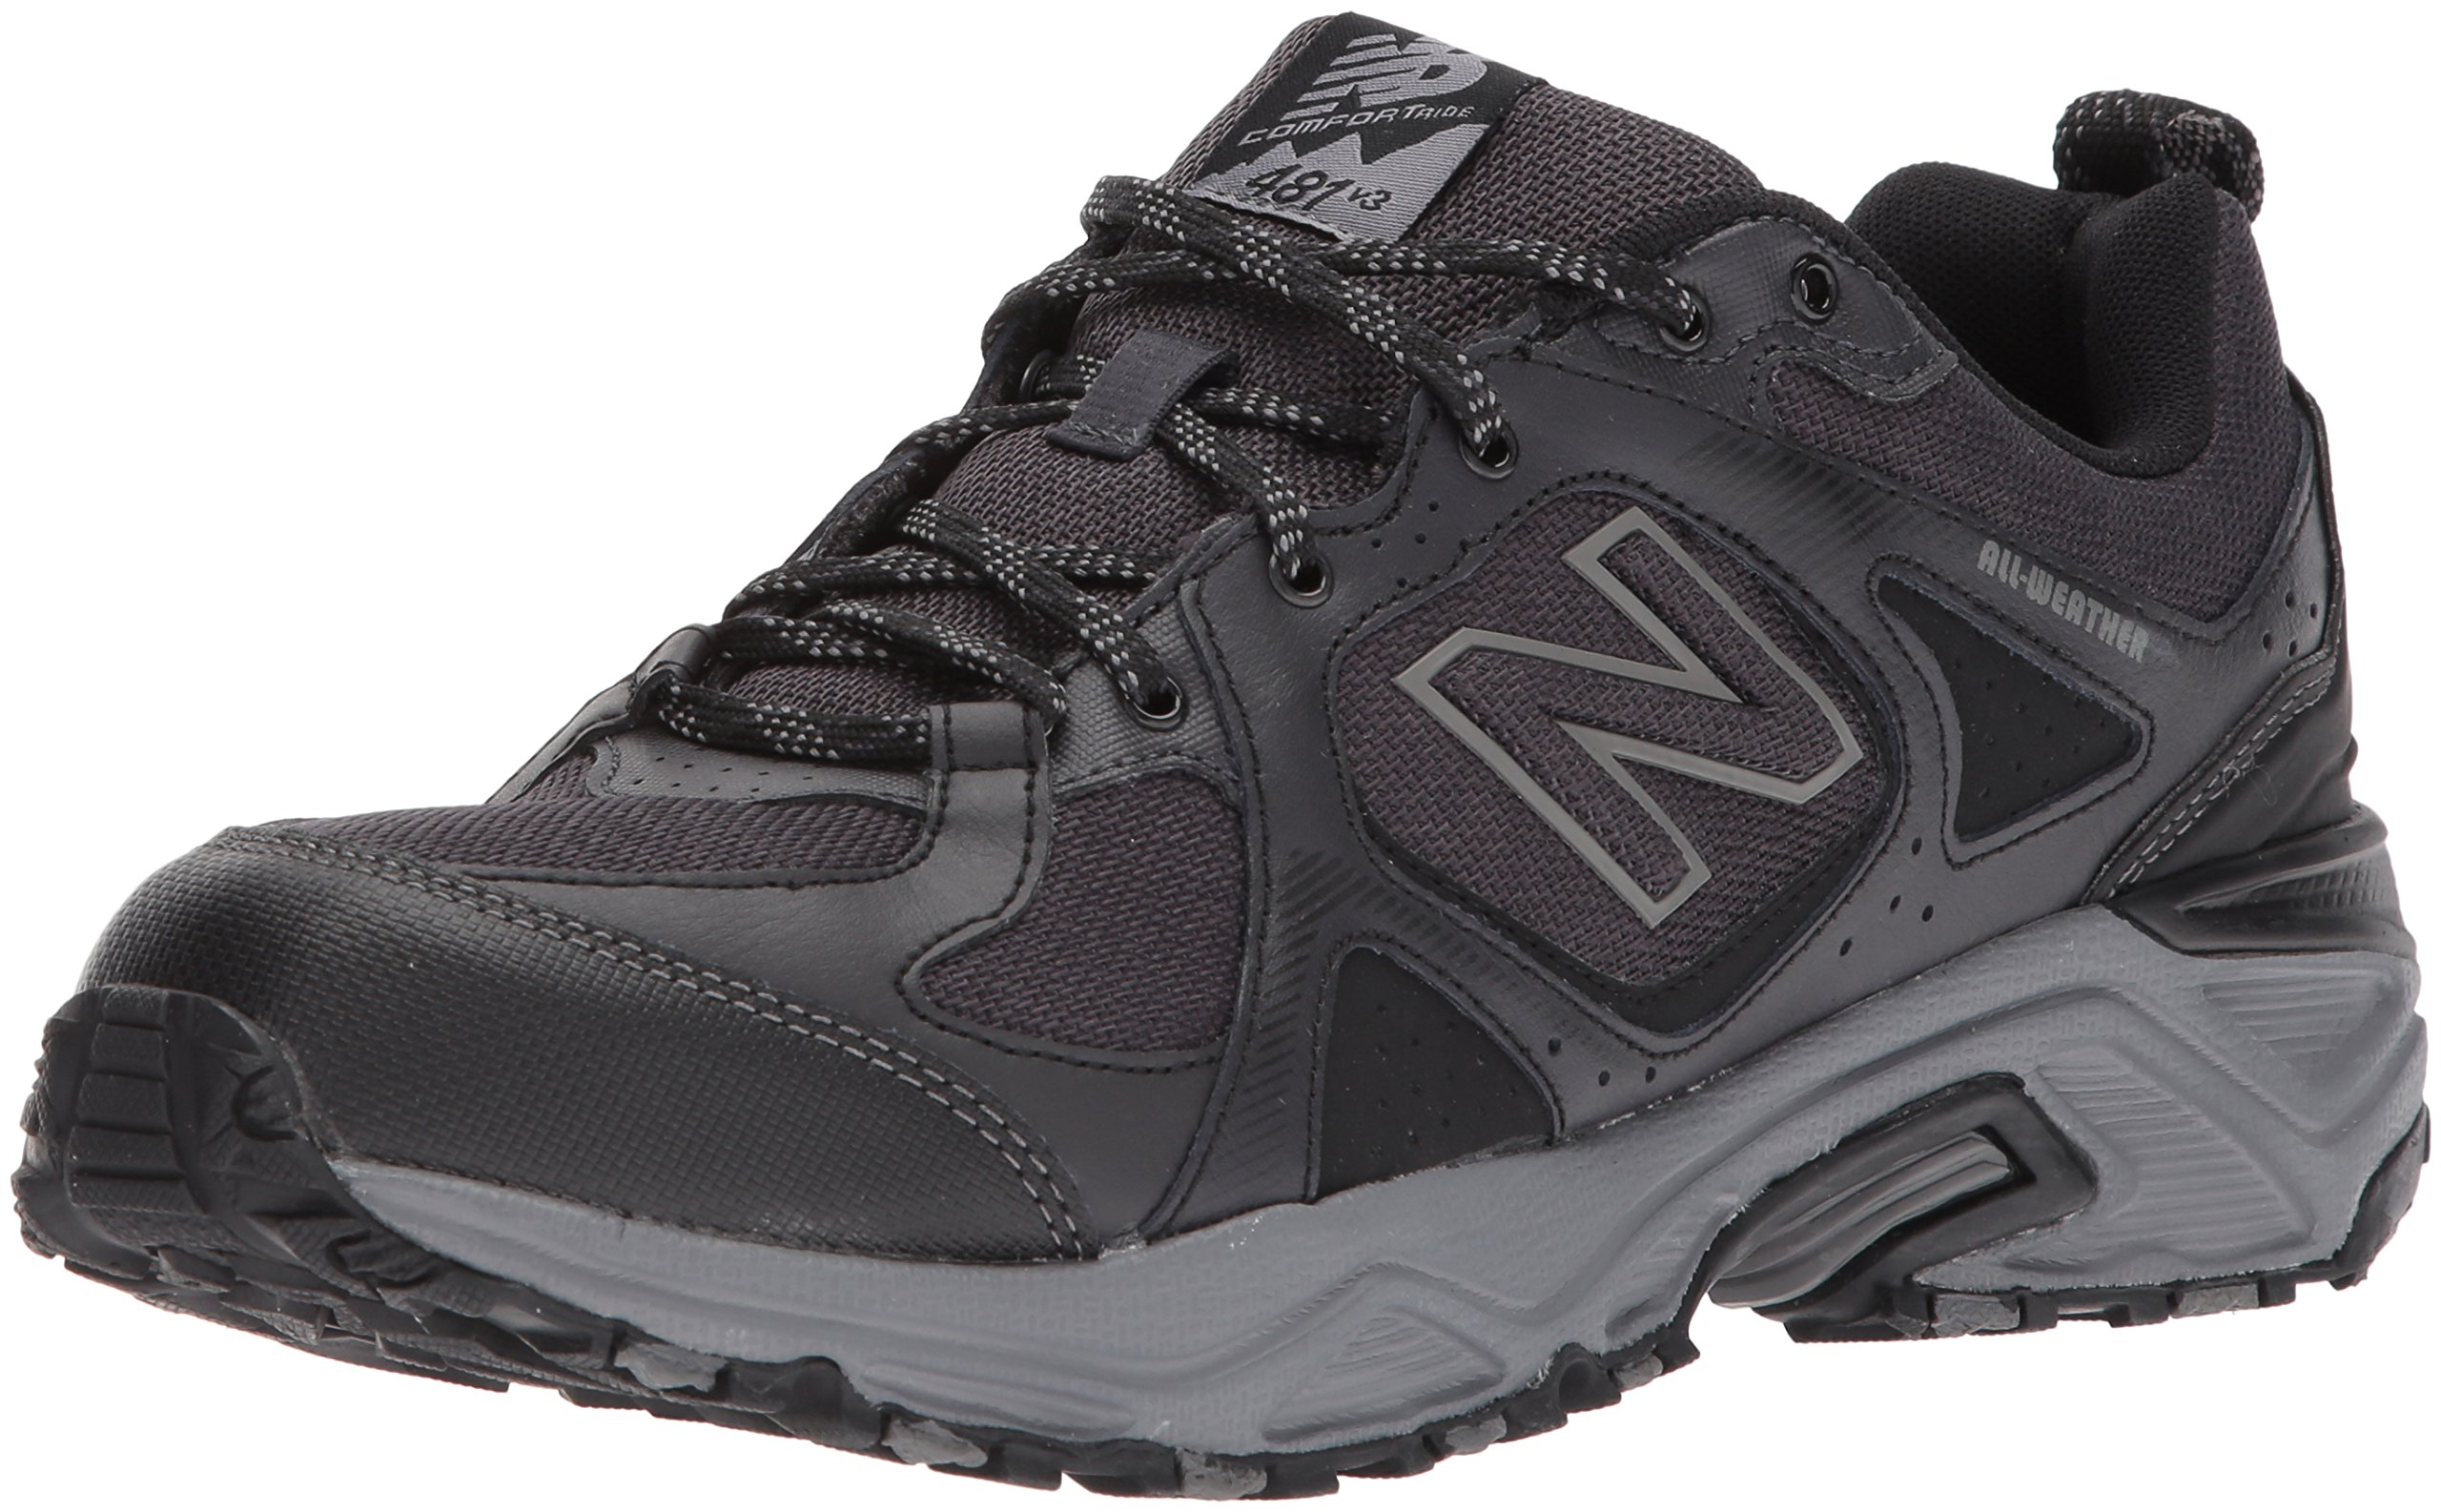 New Balance Men's 481V3 Water Resistant Cushioning Trail Running Shoe, Black/Grey, 15 4E US by New Balance